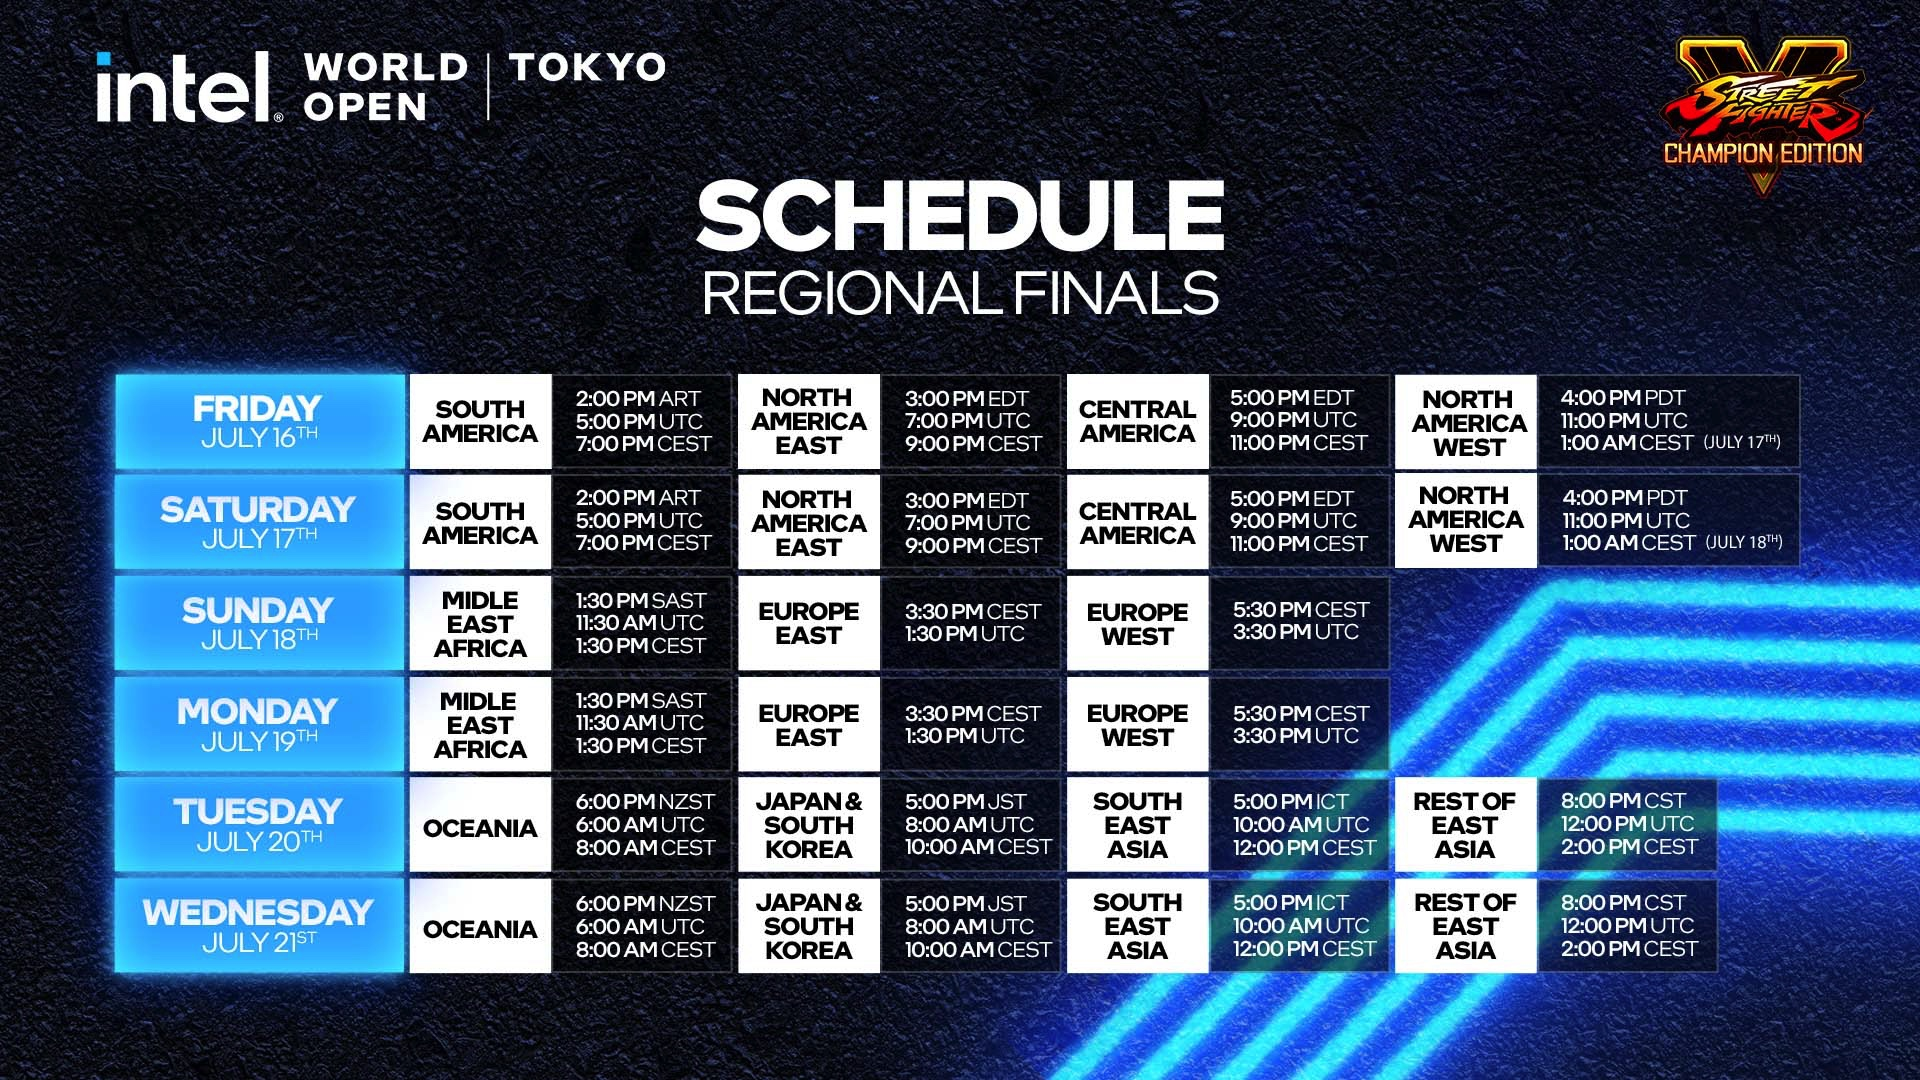 Intel World Open Finals Schedule 1 out of 1 image gallery